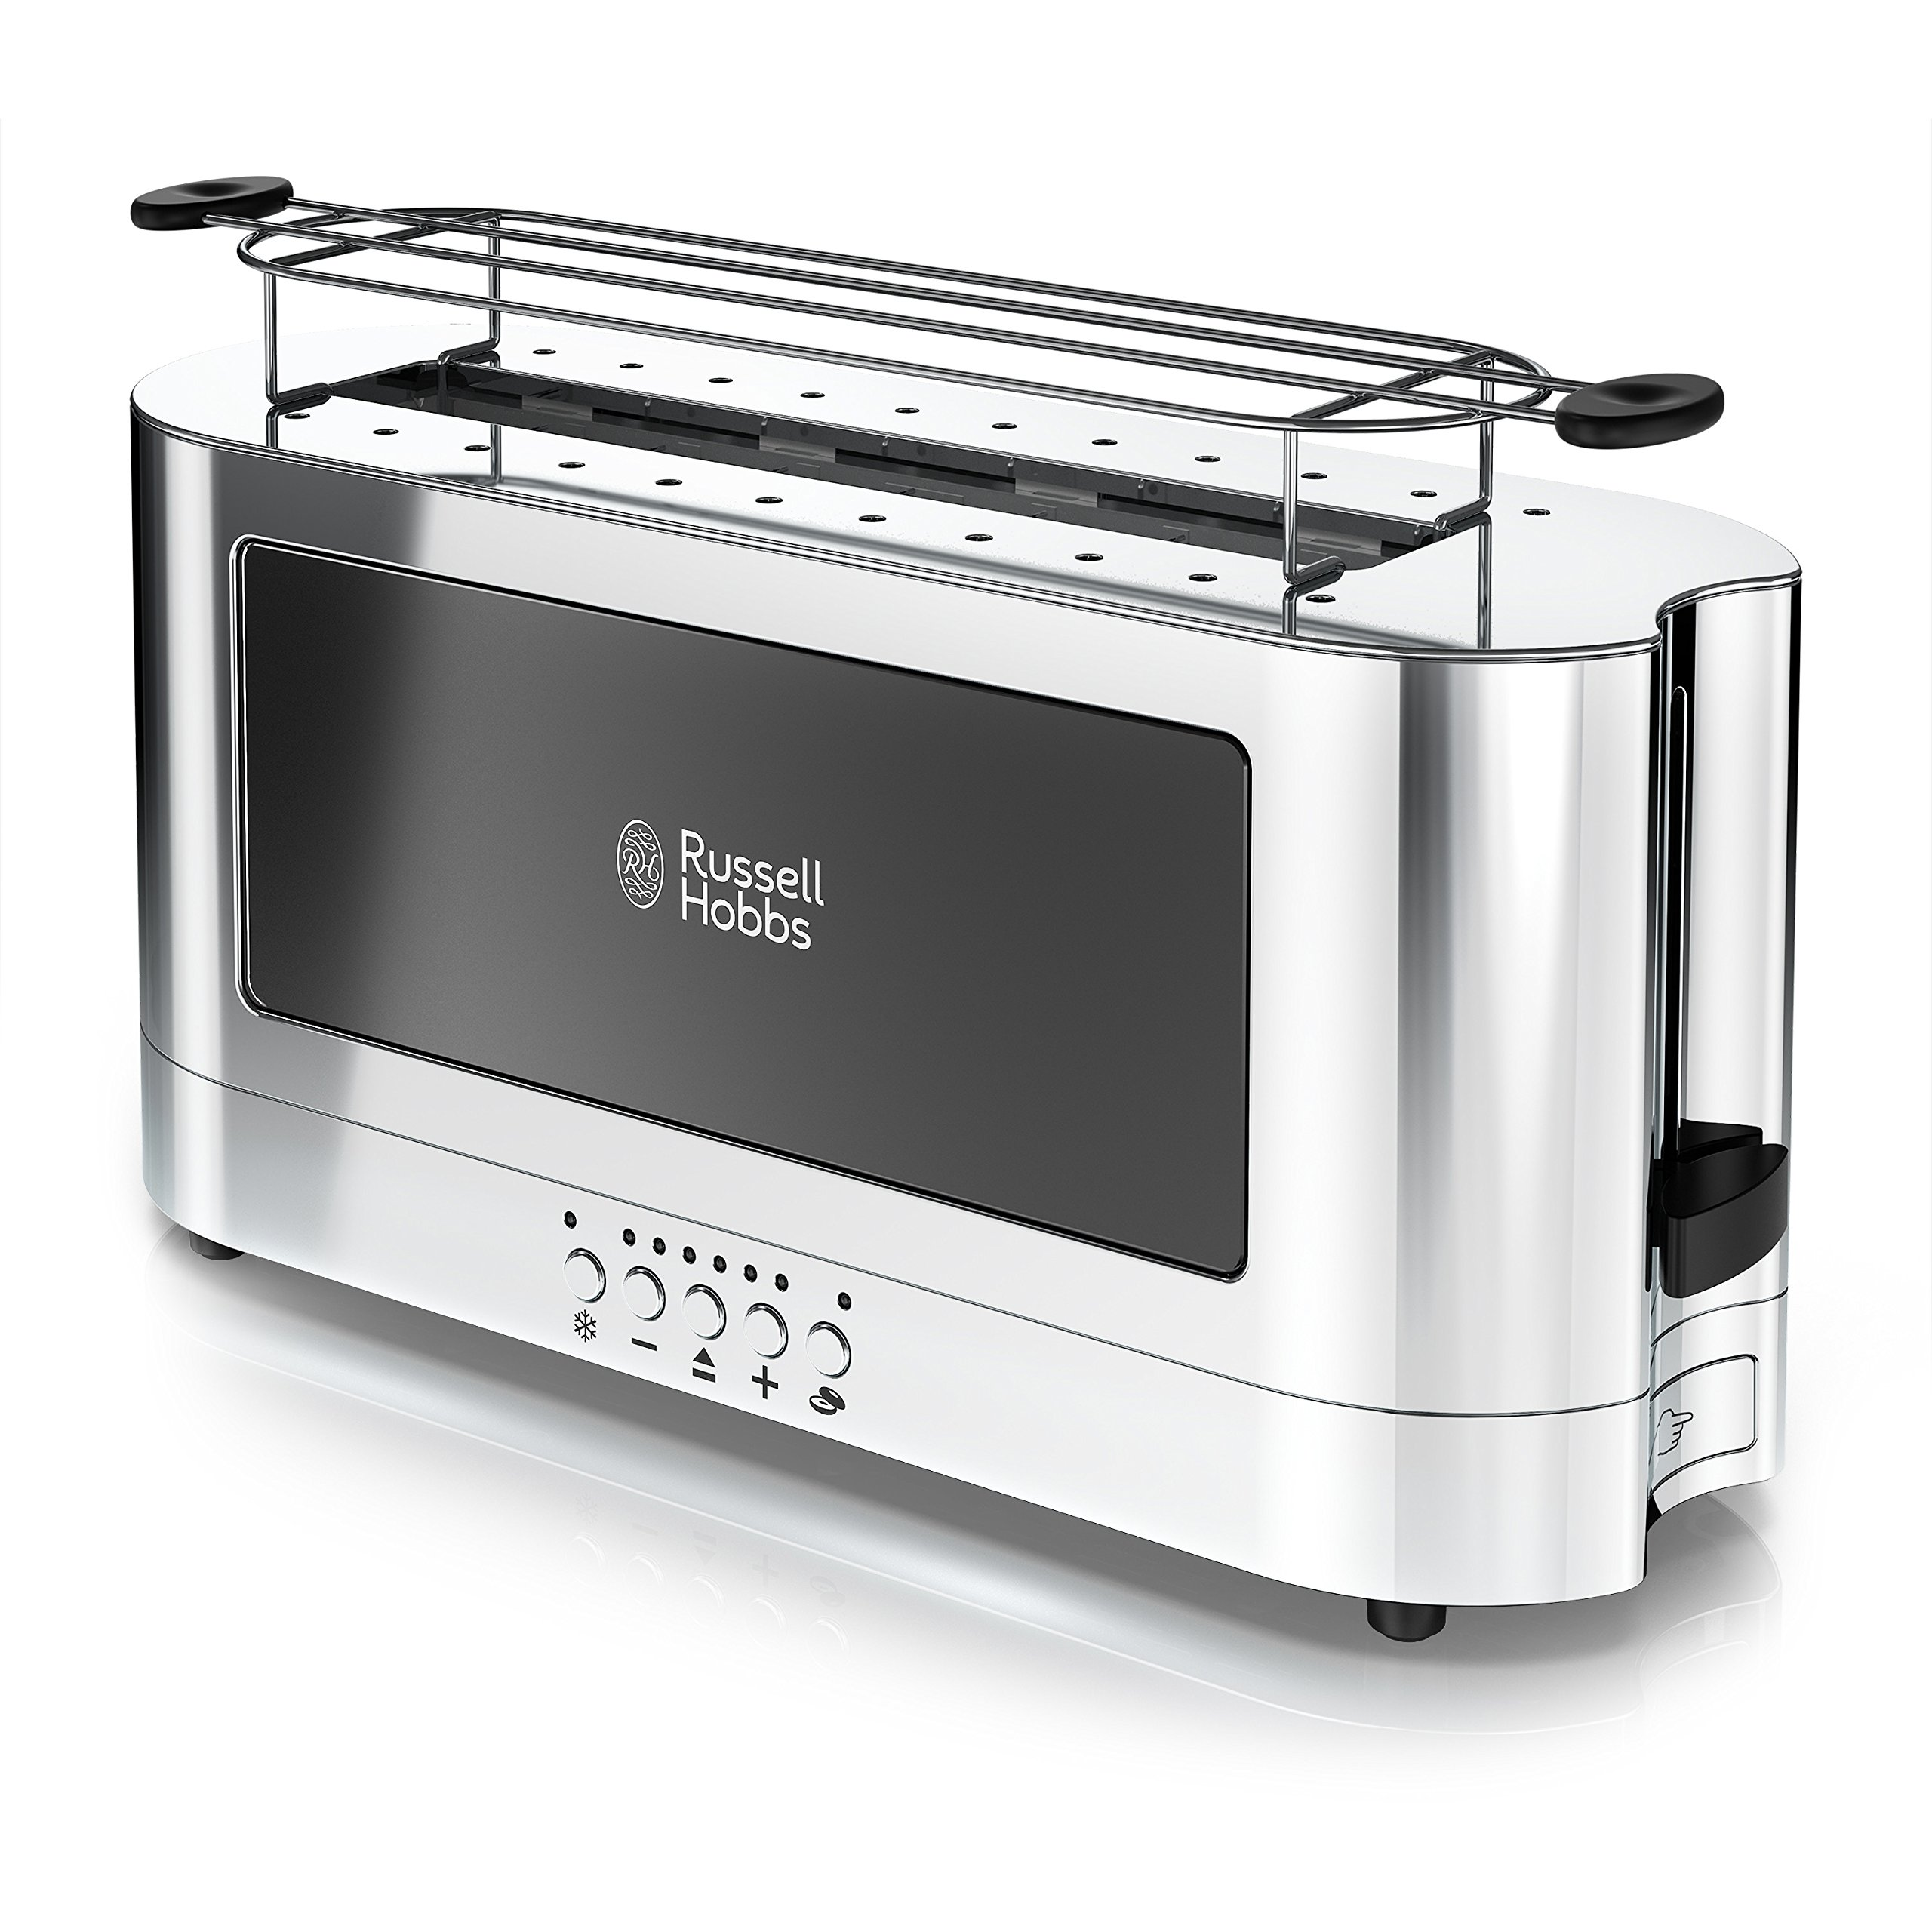 oven toasters touch one electronic thick two and toaster in fast breads cool cpt cuisinart for black slice decker